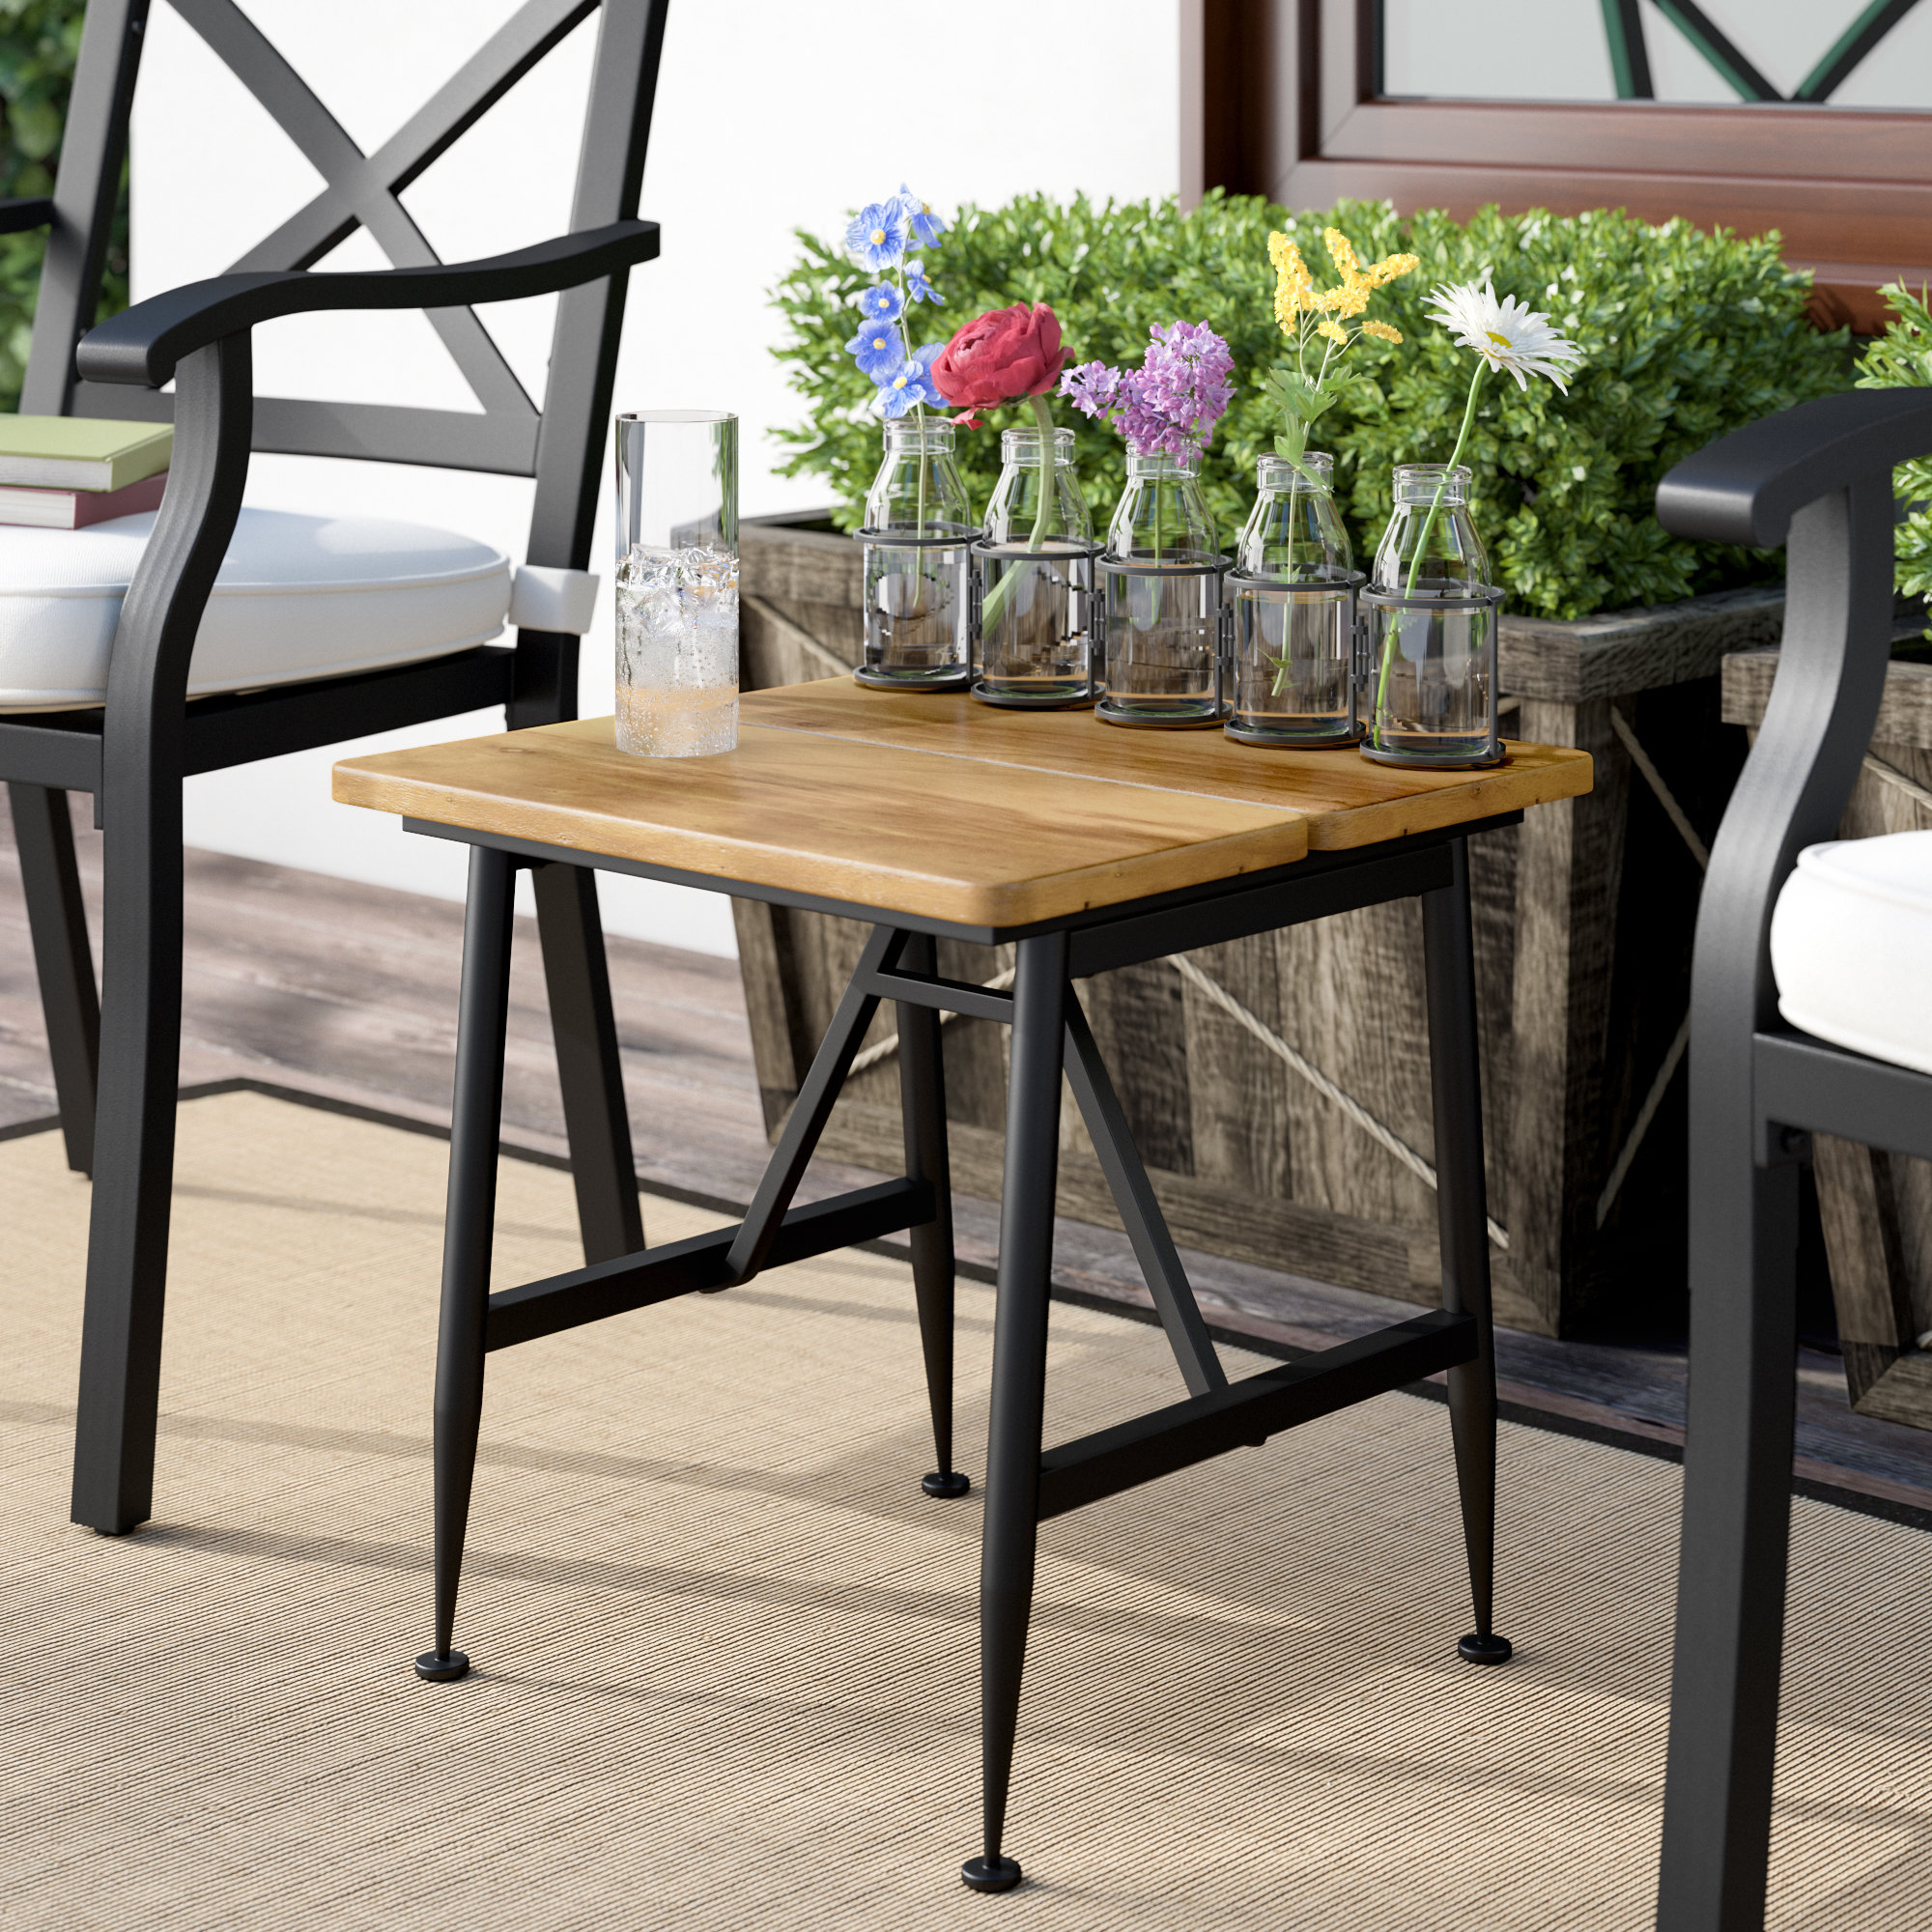 gracie oaks frankston outdoor wood accent table reviews metal xmas tablecloths and runners living room cabinets corner end target wall mirrors cream linen tablecloth matching side